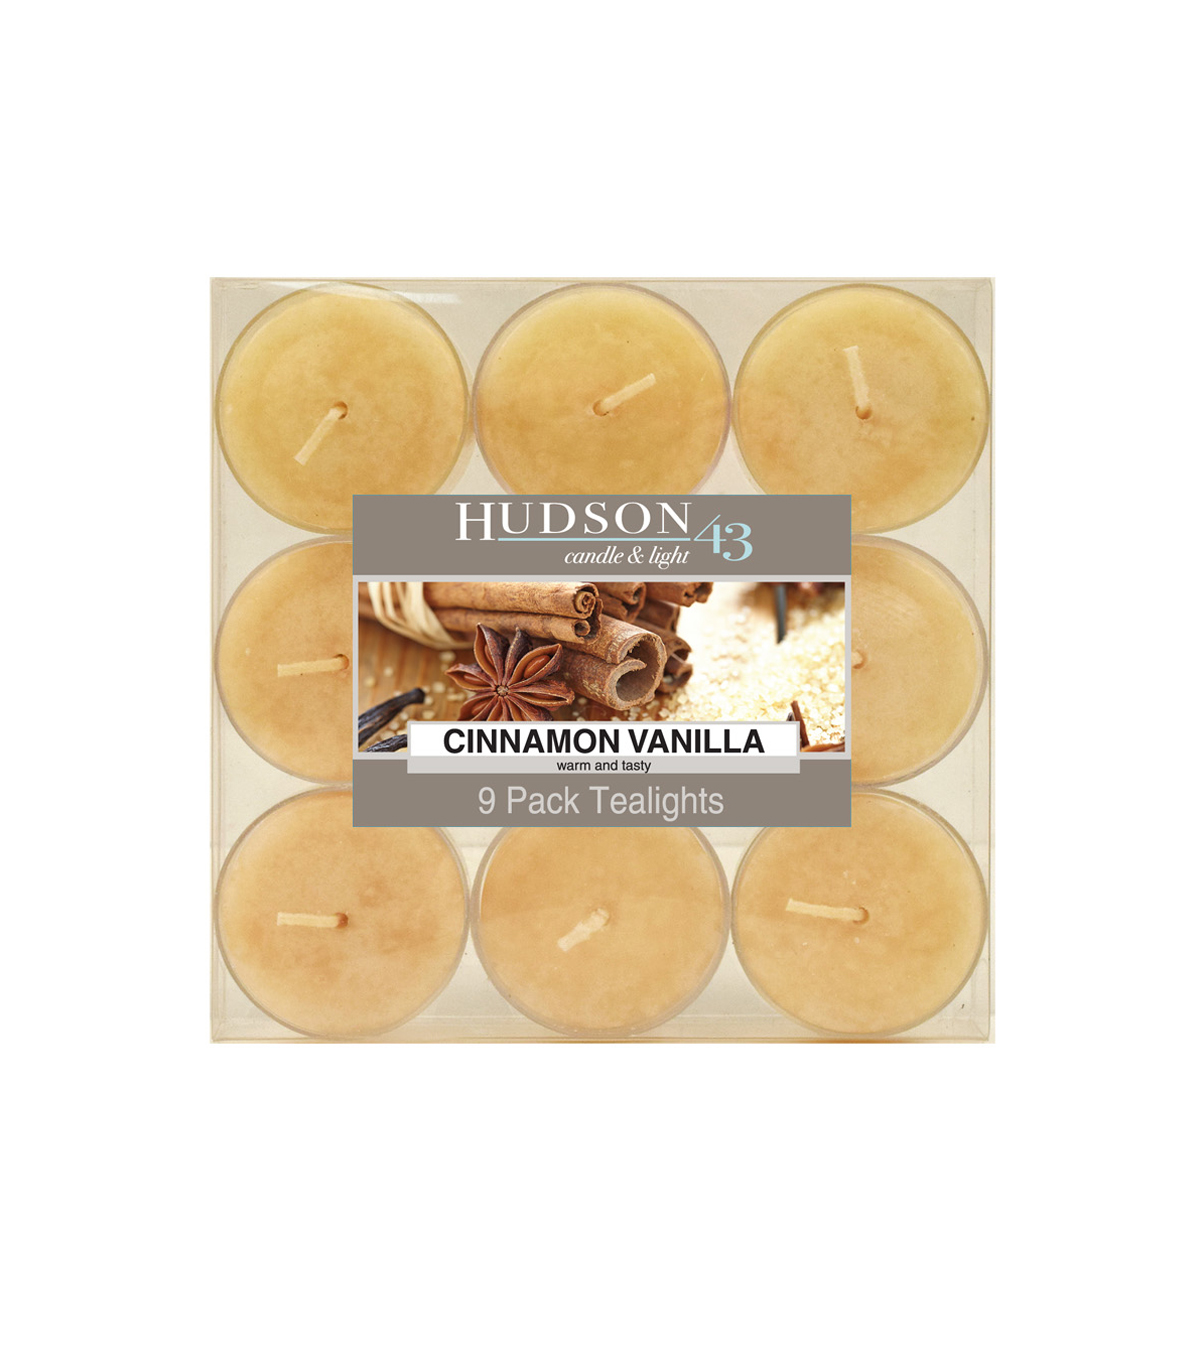 Hudson 43™ Candle & Light Collection 9 Pack Cinnamon Vanilla Tealights